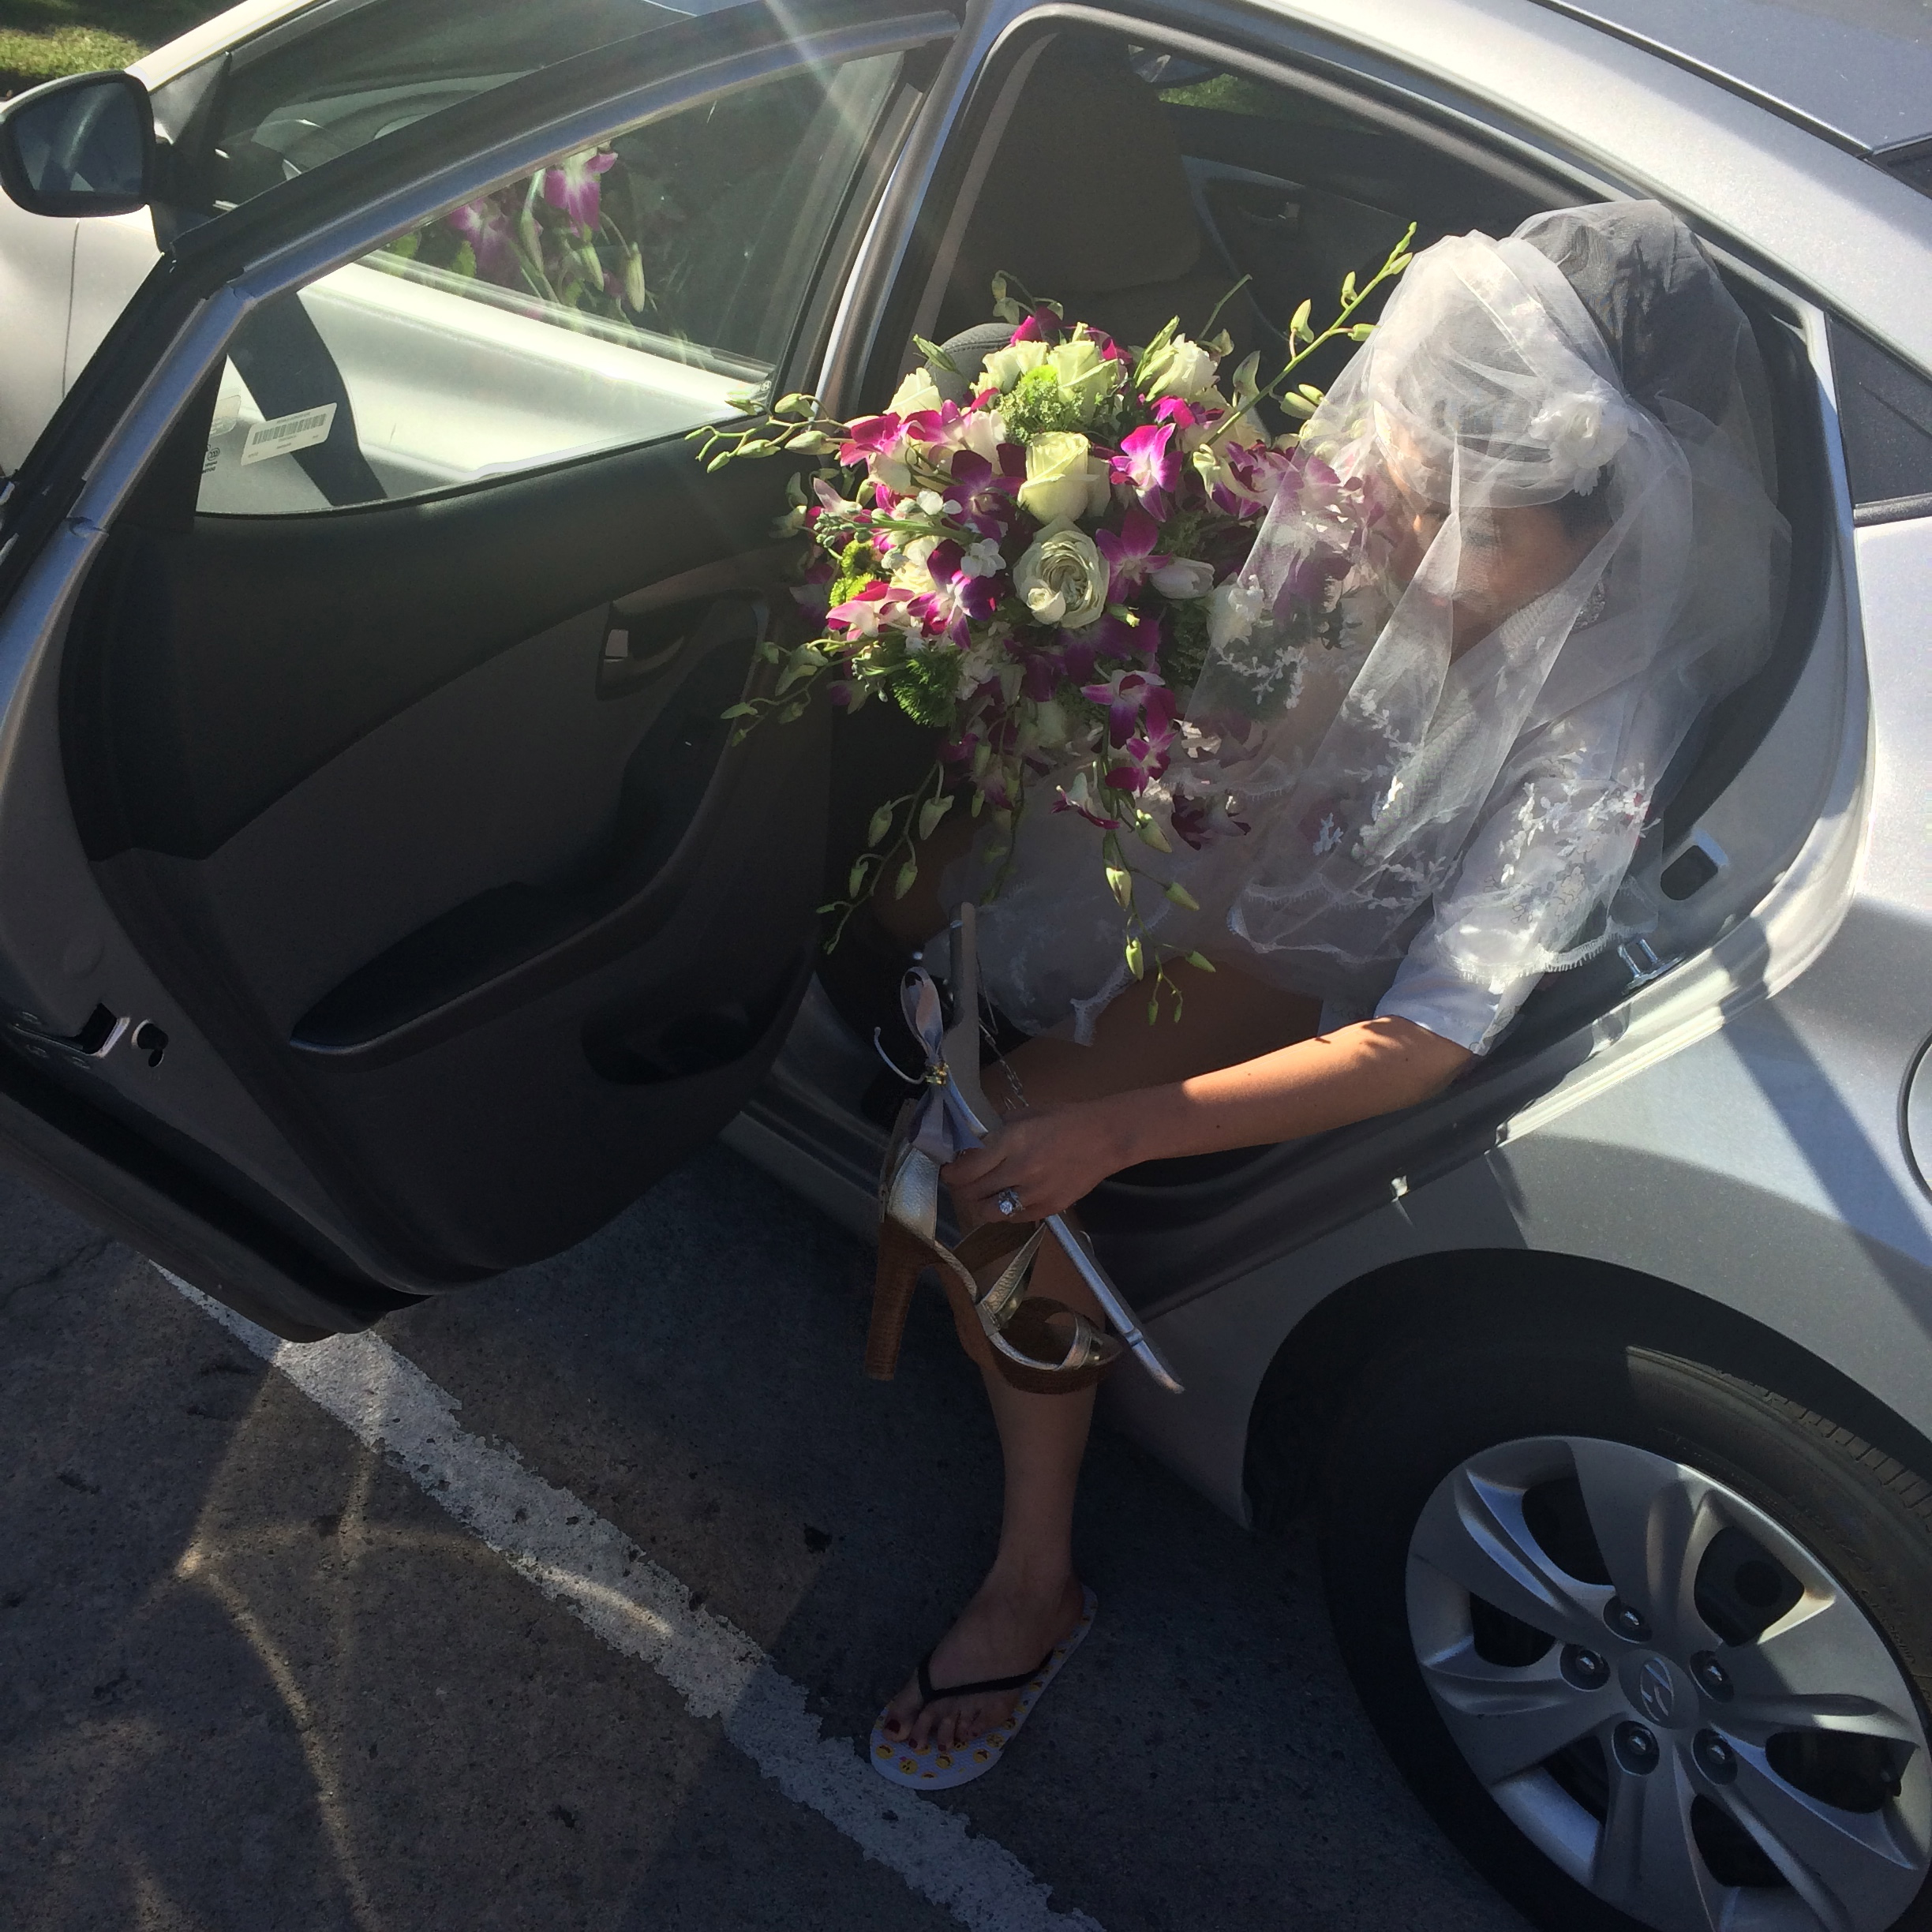 """This one says: """"I didn't think through the transport issues associated with this gargantuan homemade cascade bouquet. Someone will figure it out for me!"""""""